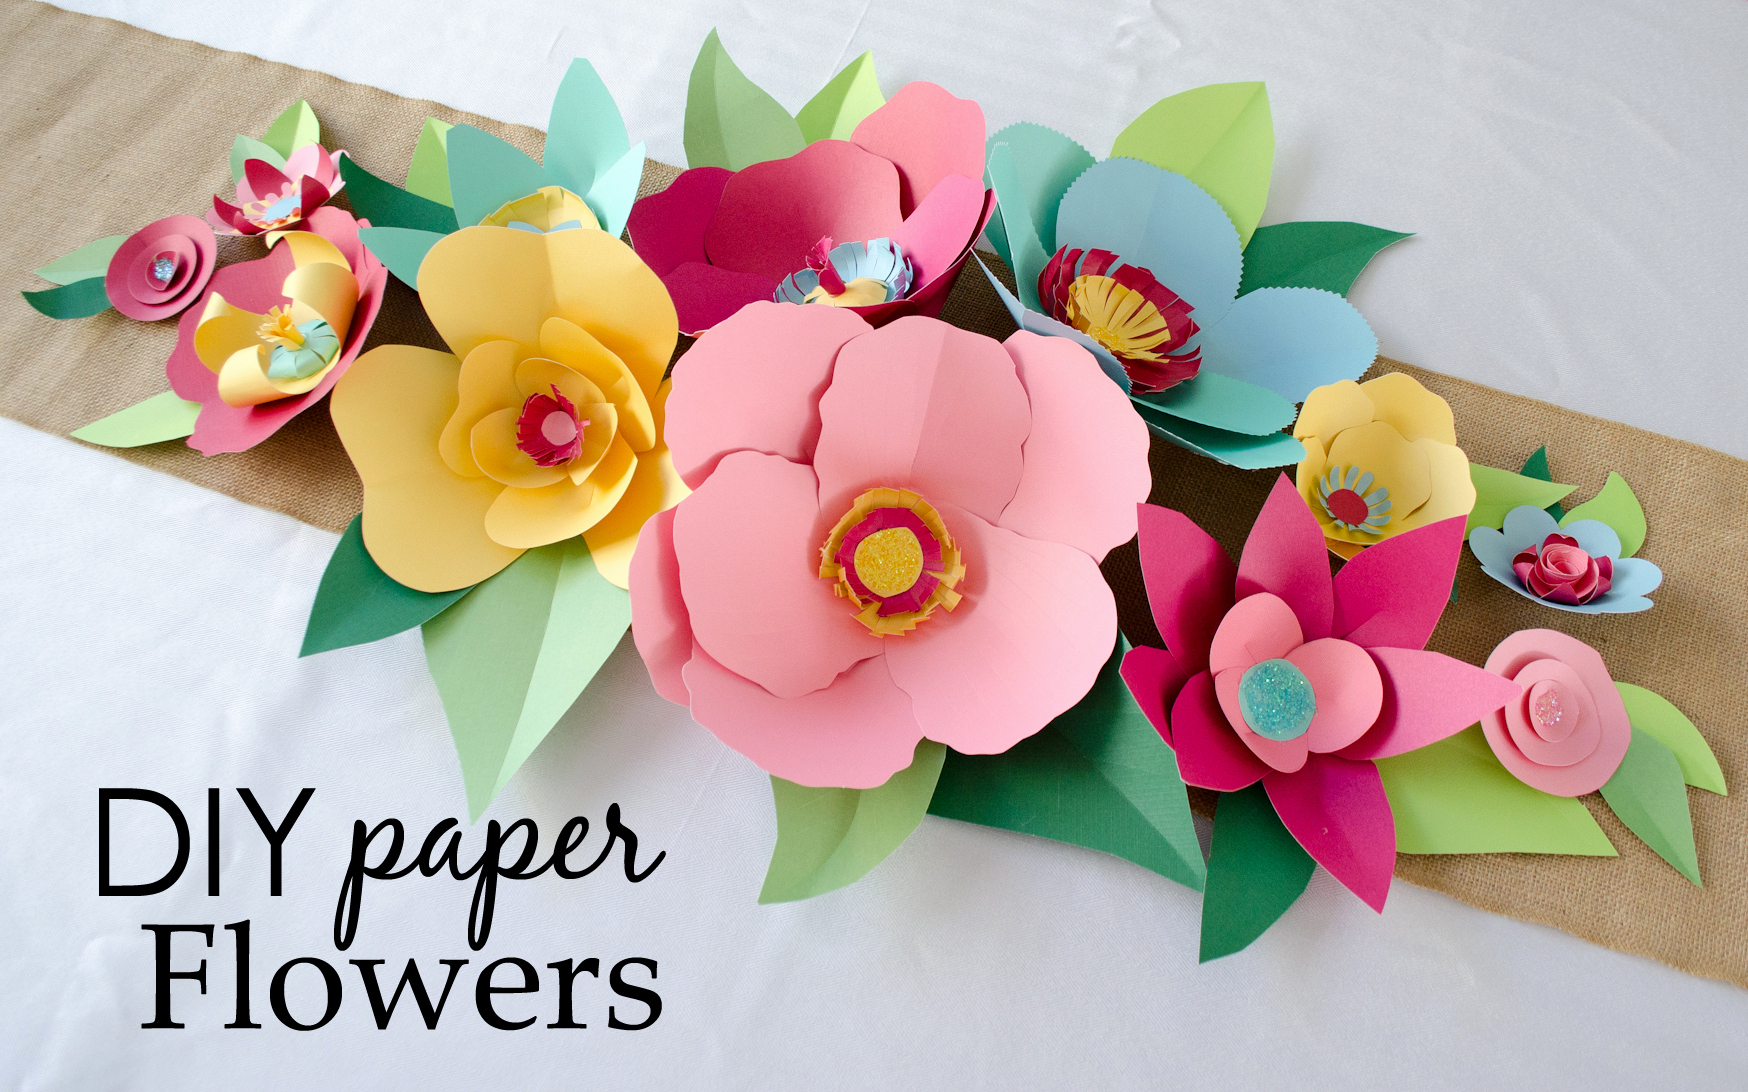 Template for Paper Flowers Elegant Diy Hand Cut Paper Flowers Project Nursery